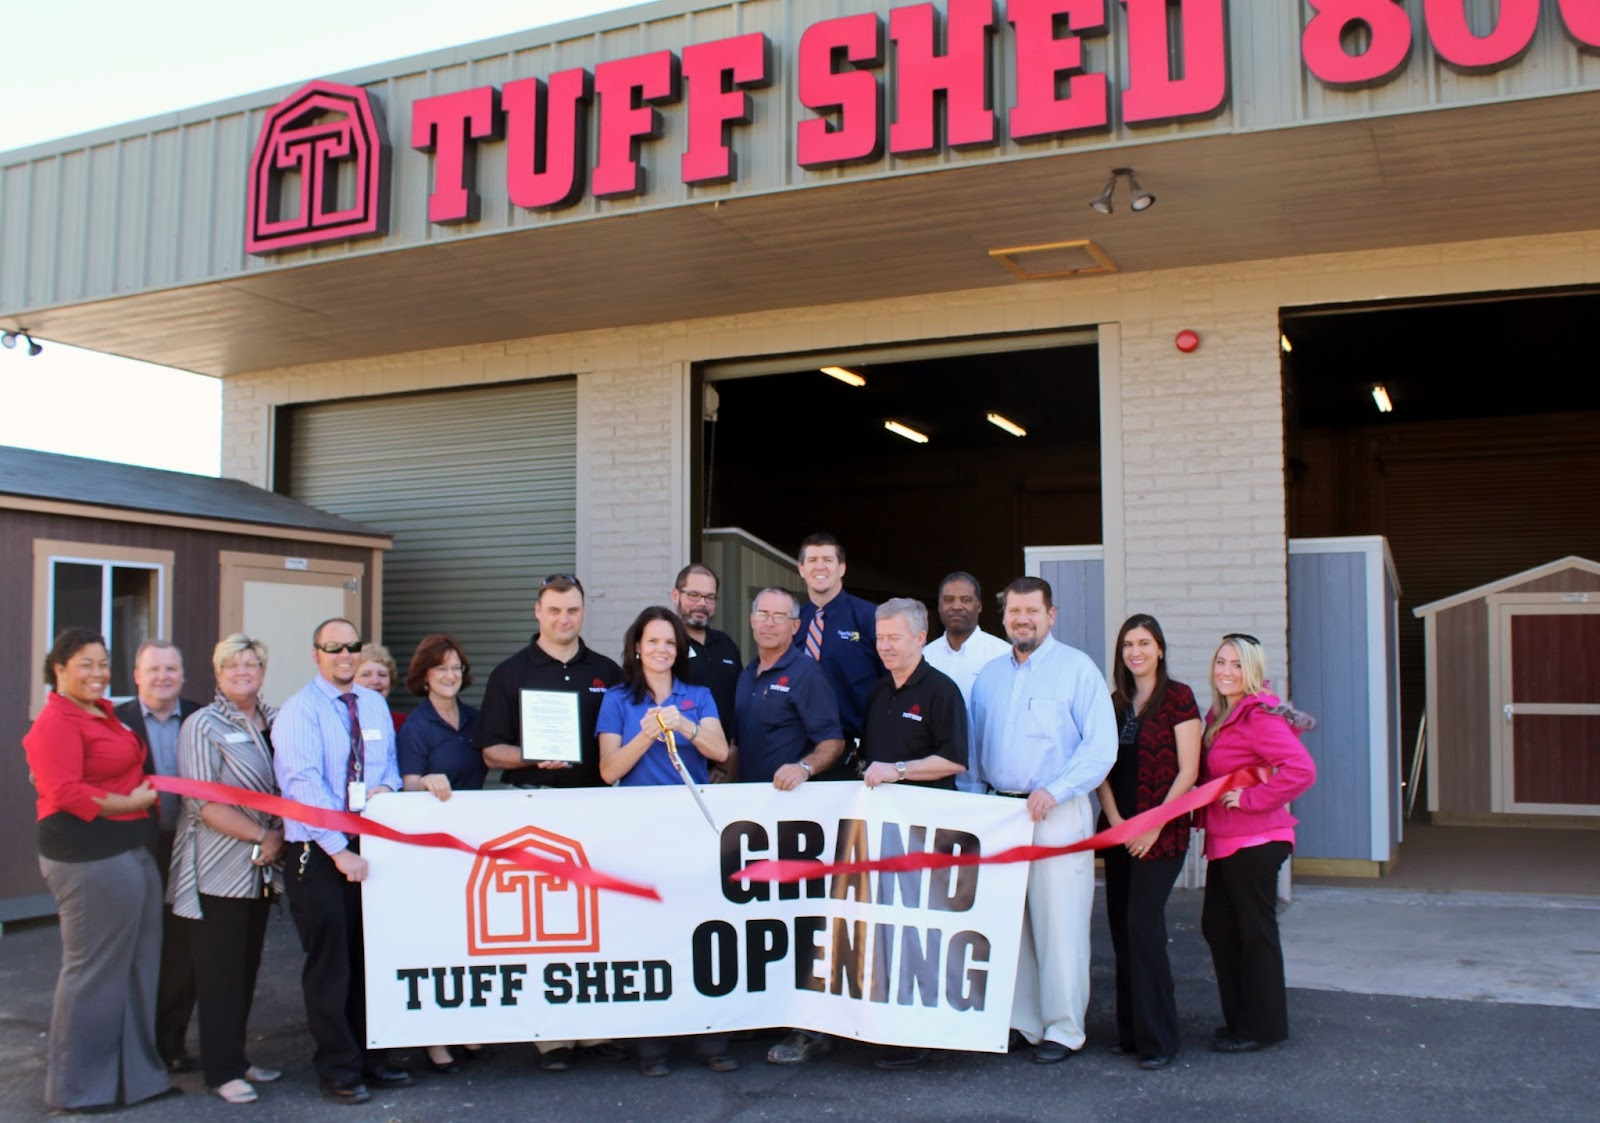 """At Tuff Shed, our mission is to be the premier provider of storage buildings and garages, creating products of lasting value for our customers. Come and check out our incredible selection of affordable, high quality sheds, garages and cabins.""  Tuff Shed 3502 N. Oracle Road Tucson, AZ 85705 (520) 289-3936"